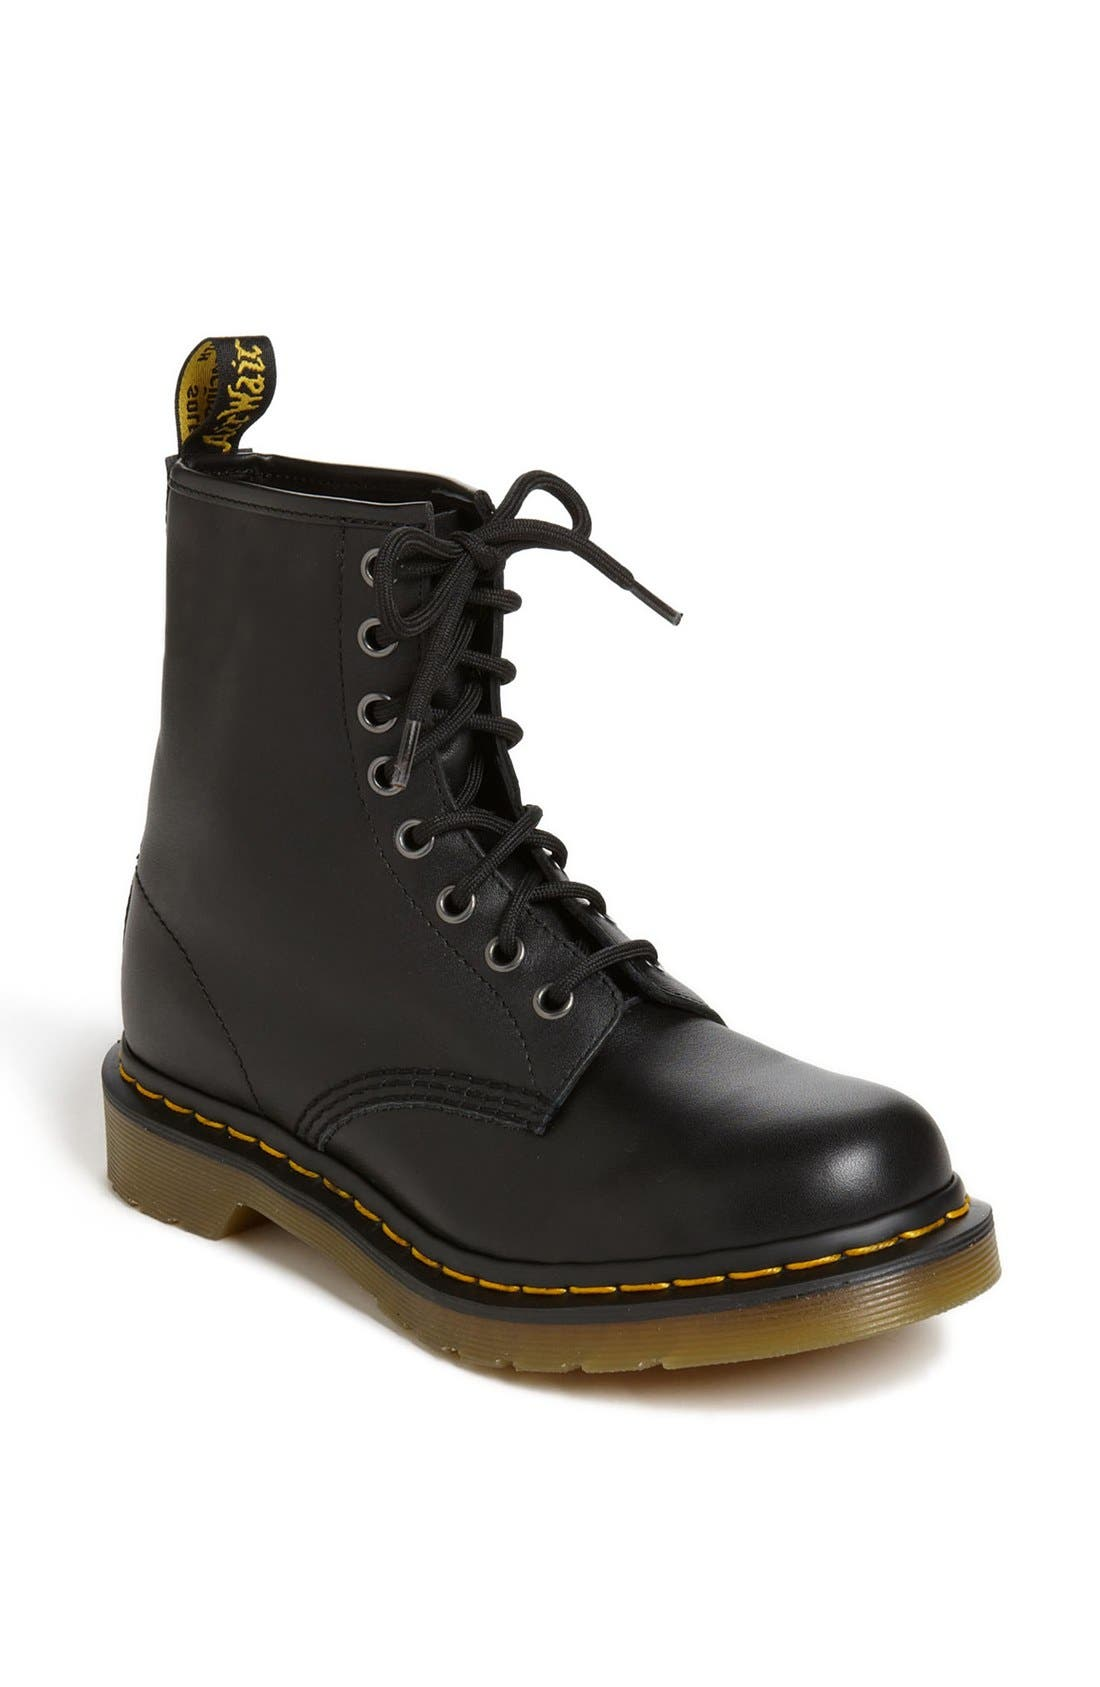 Alternate Image 1 Selected - Dr. Martens 1460 W Boot (Women)